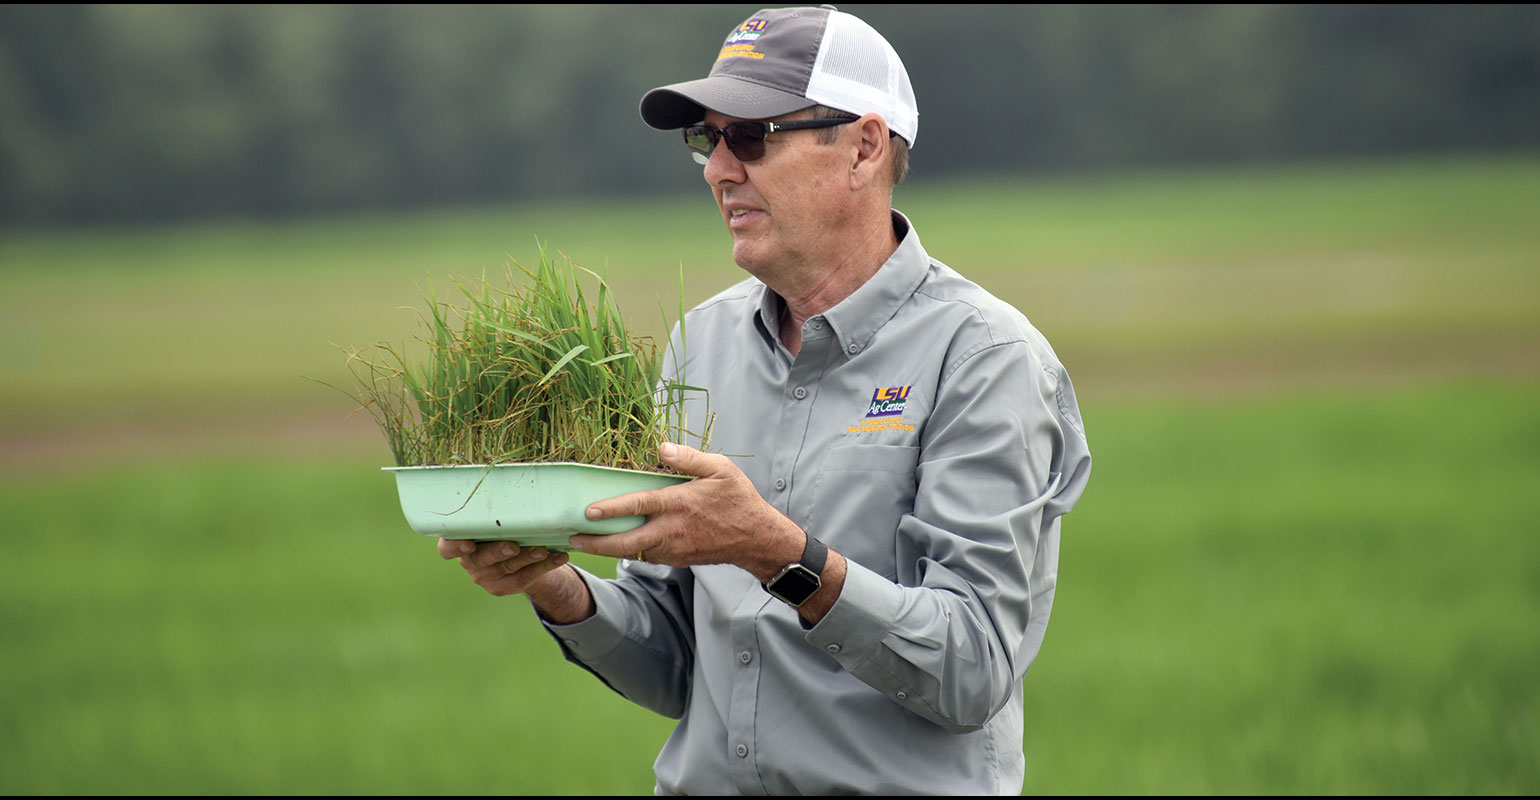 Groth named to rice research chair